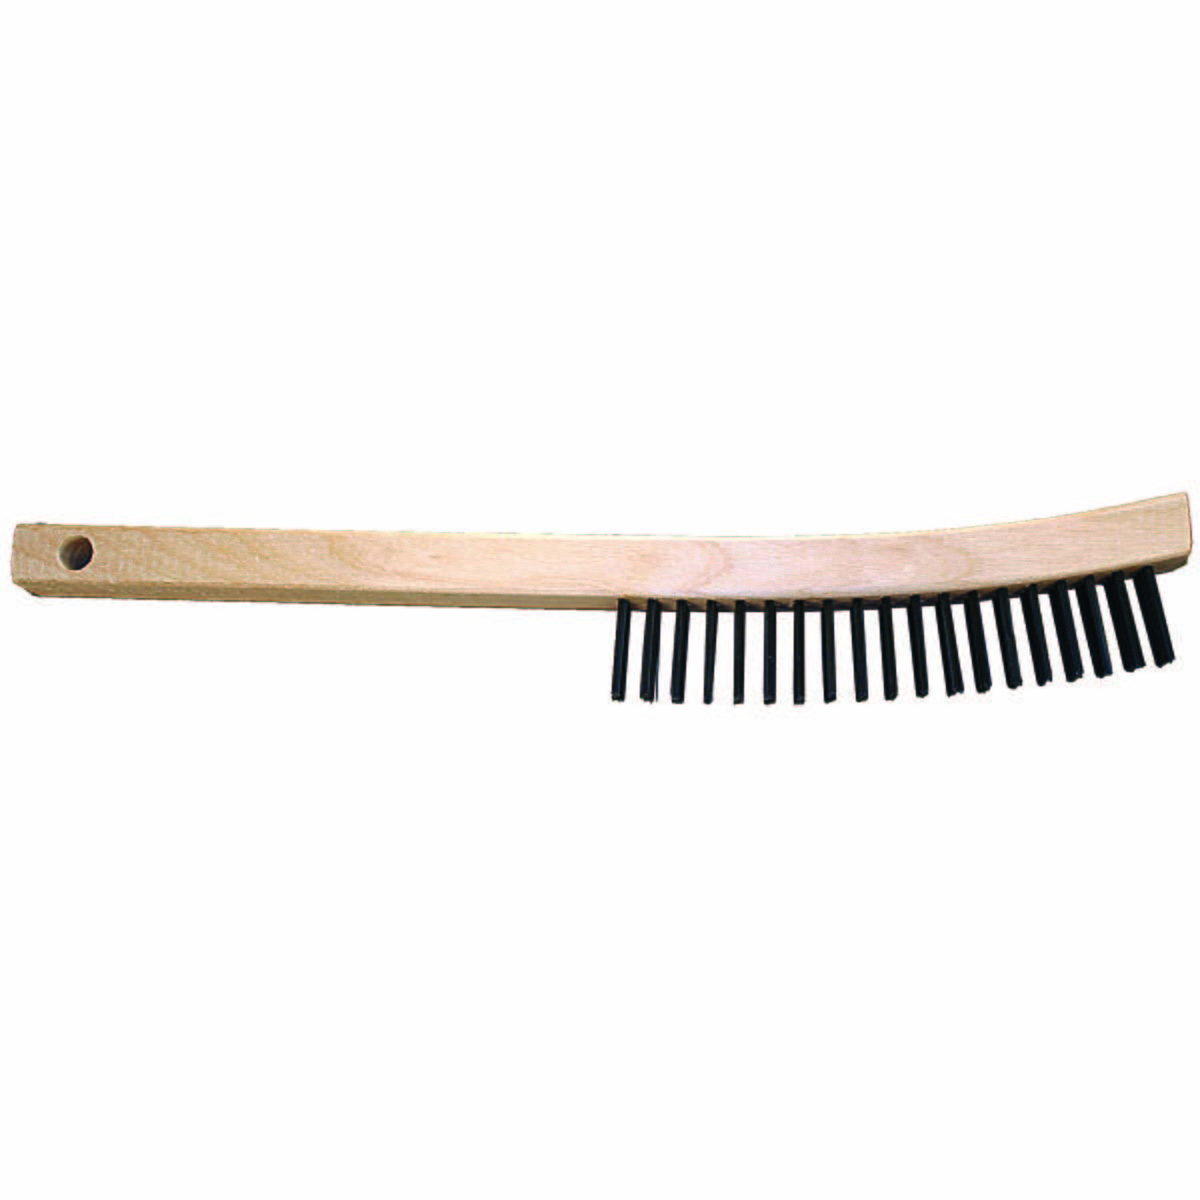 Curved Handle Scratch Brush 3x19 Rows, CS Wire, Wooden Block